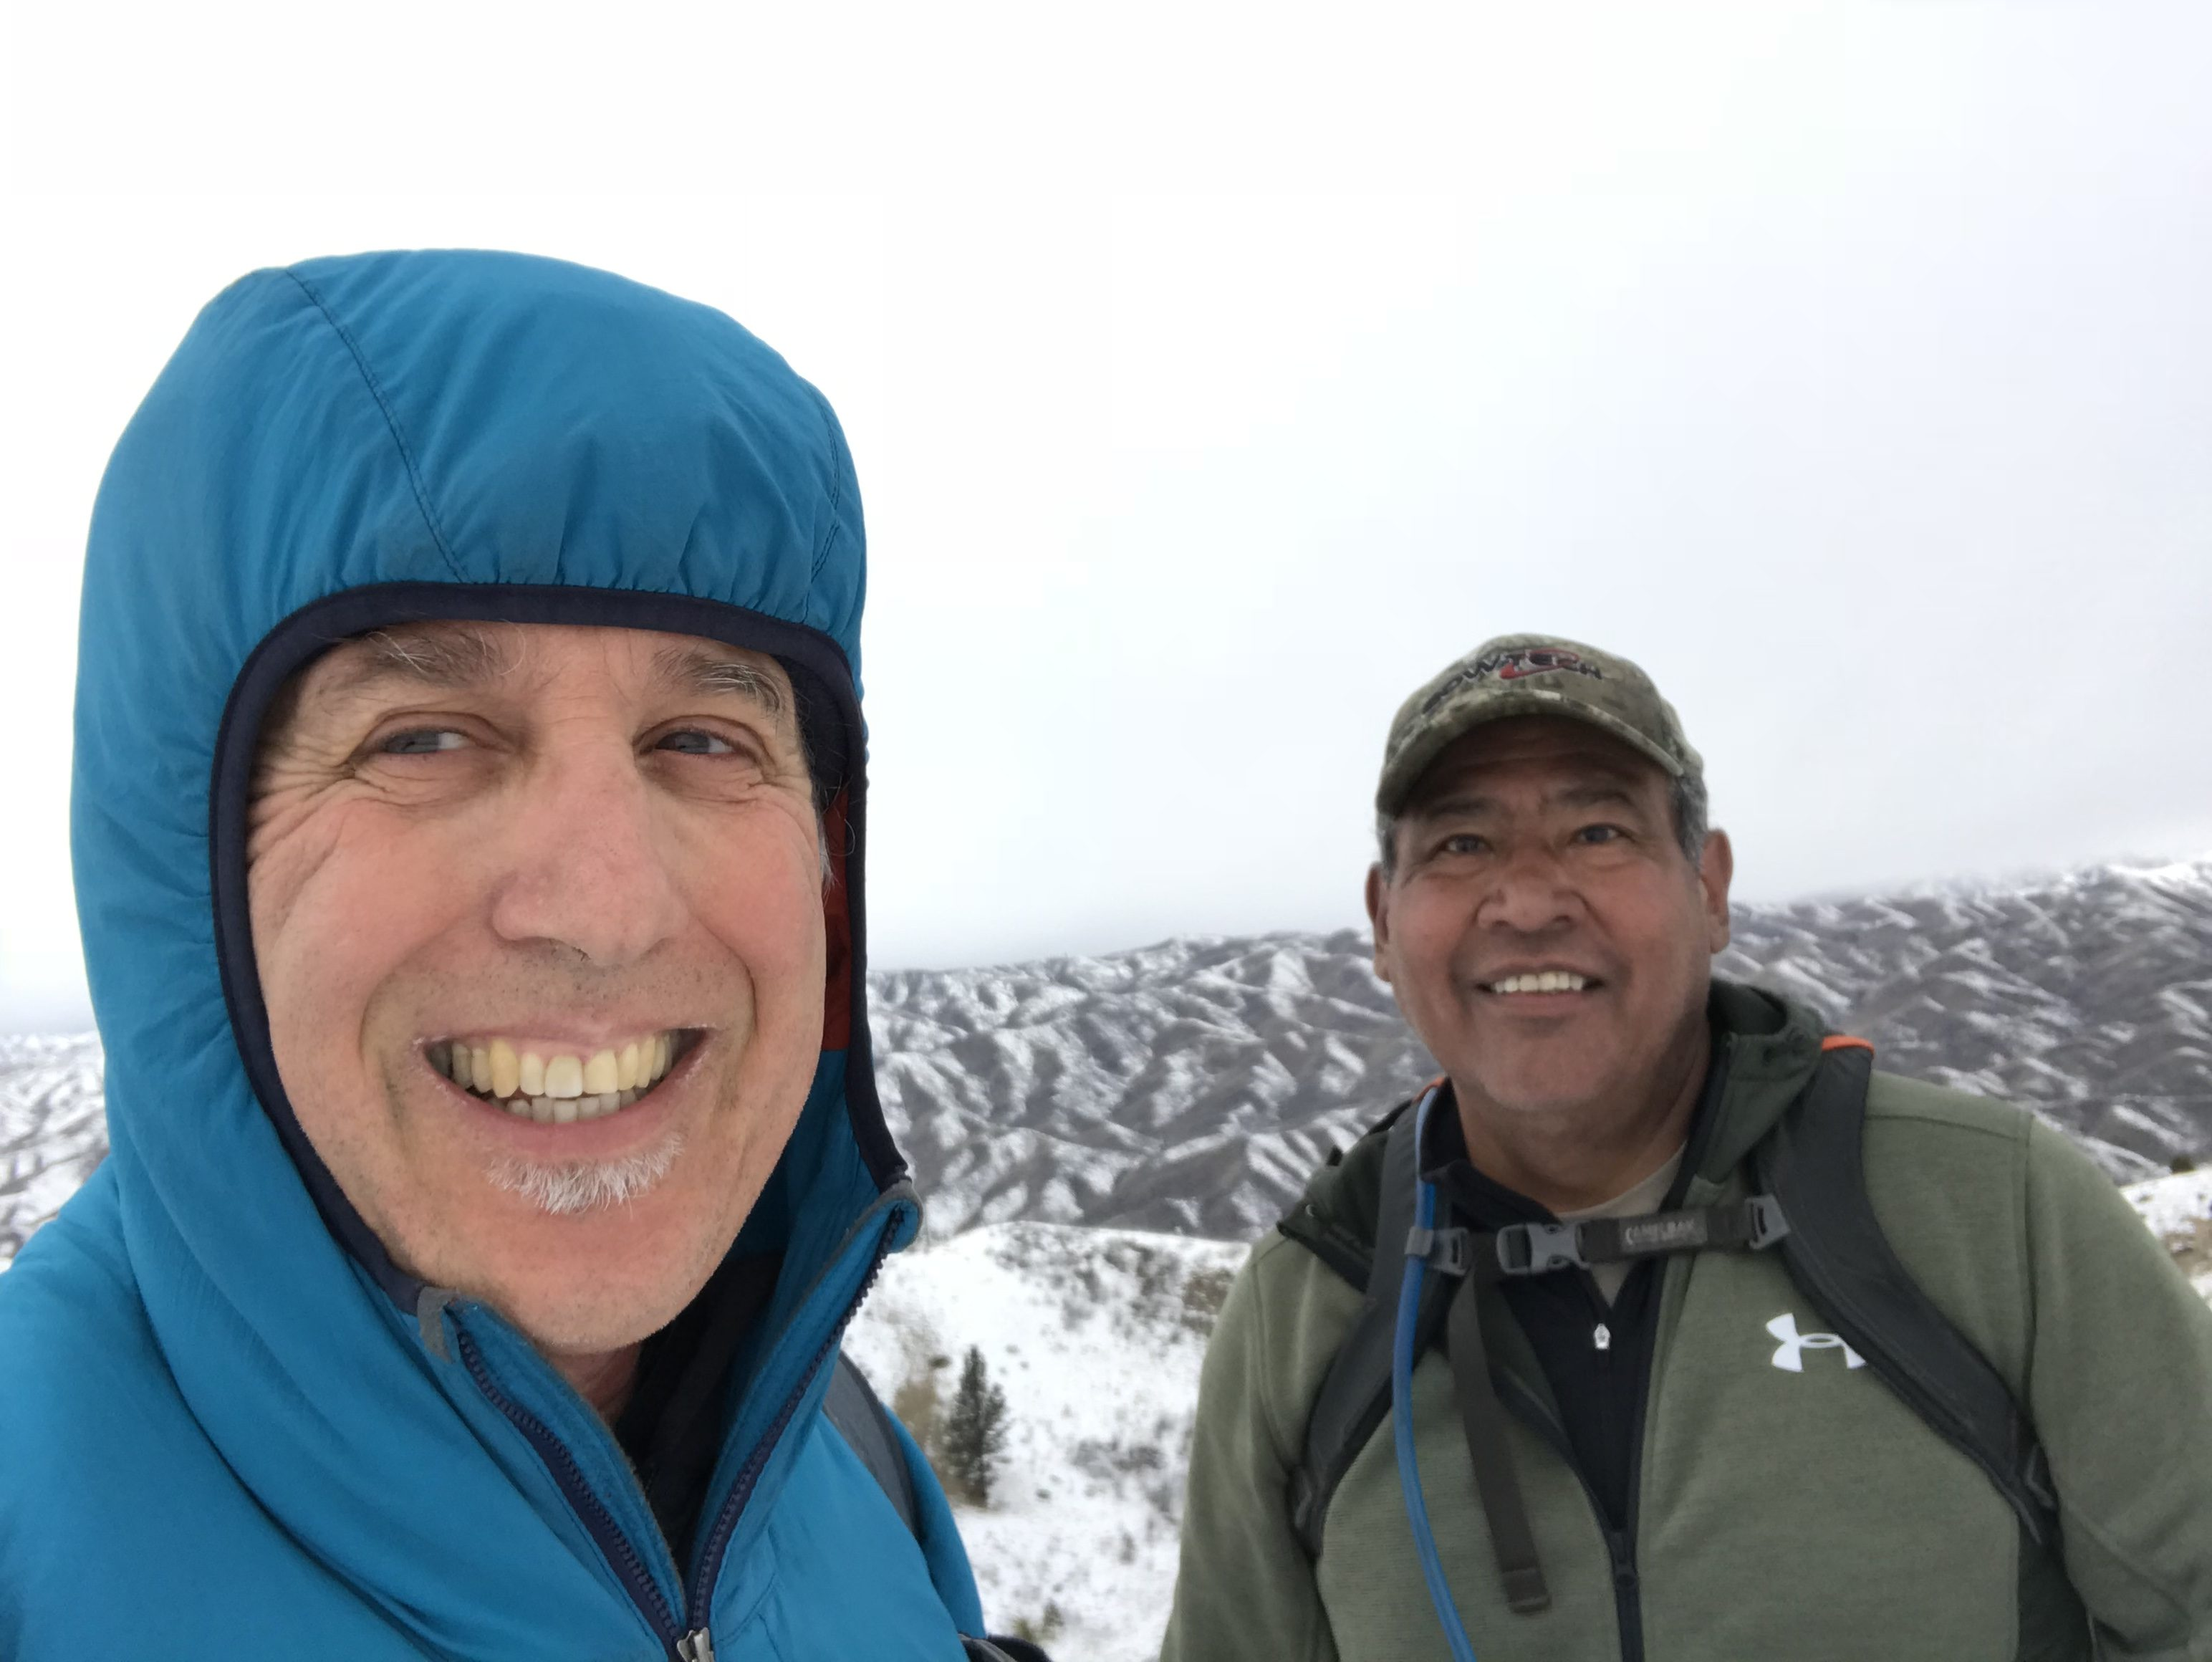 On the summit during a winter climb. Conditions can vary greatly from winter to winter. We encountered a fresh skiff of snow. A week earlier the ridge was bare. Some winters you m ind deep snow and avalanche conditions.